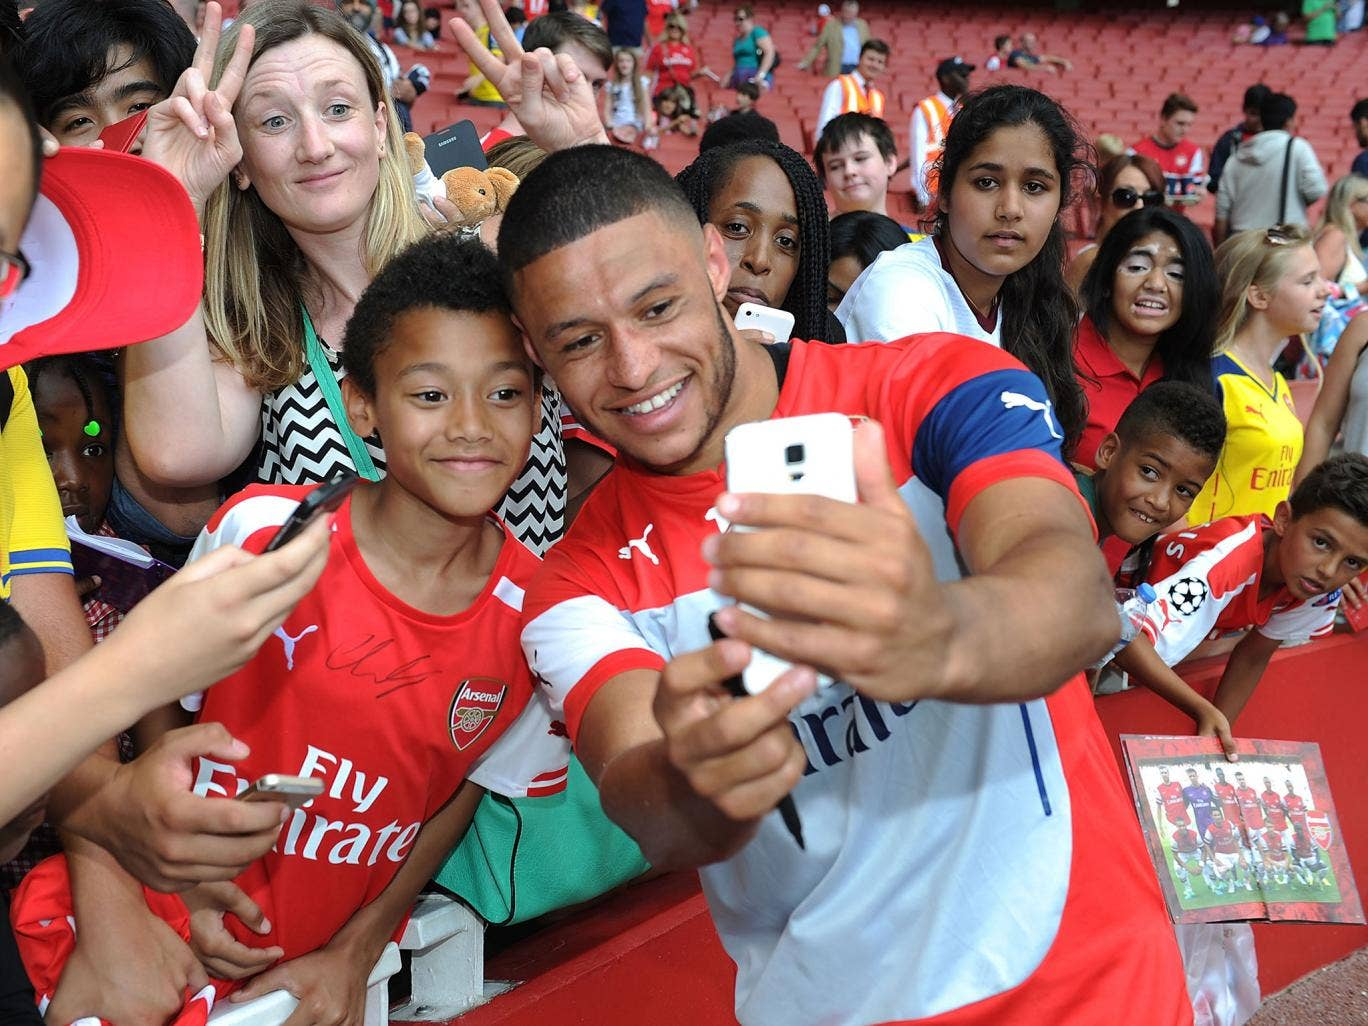 Alex Oxlade-Chamberlain poses with Arsenal fans